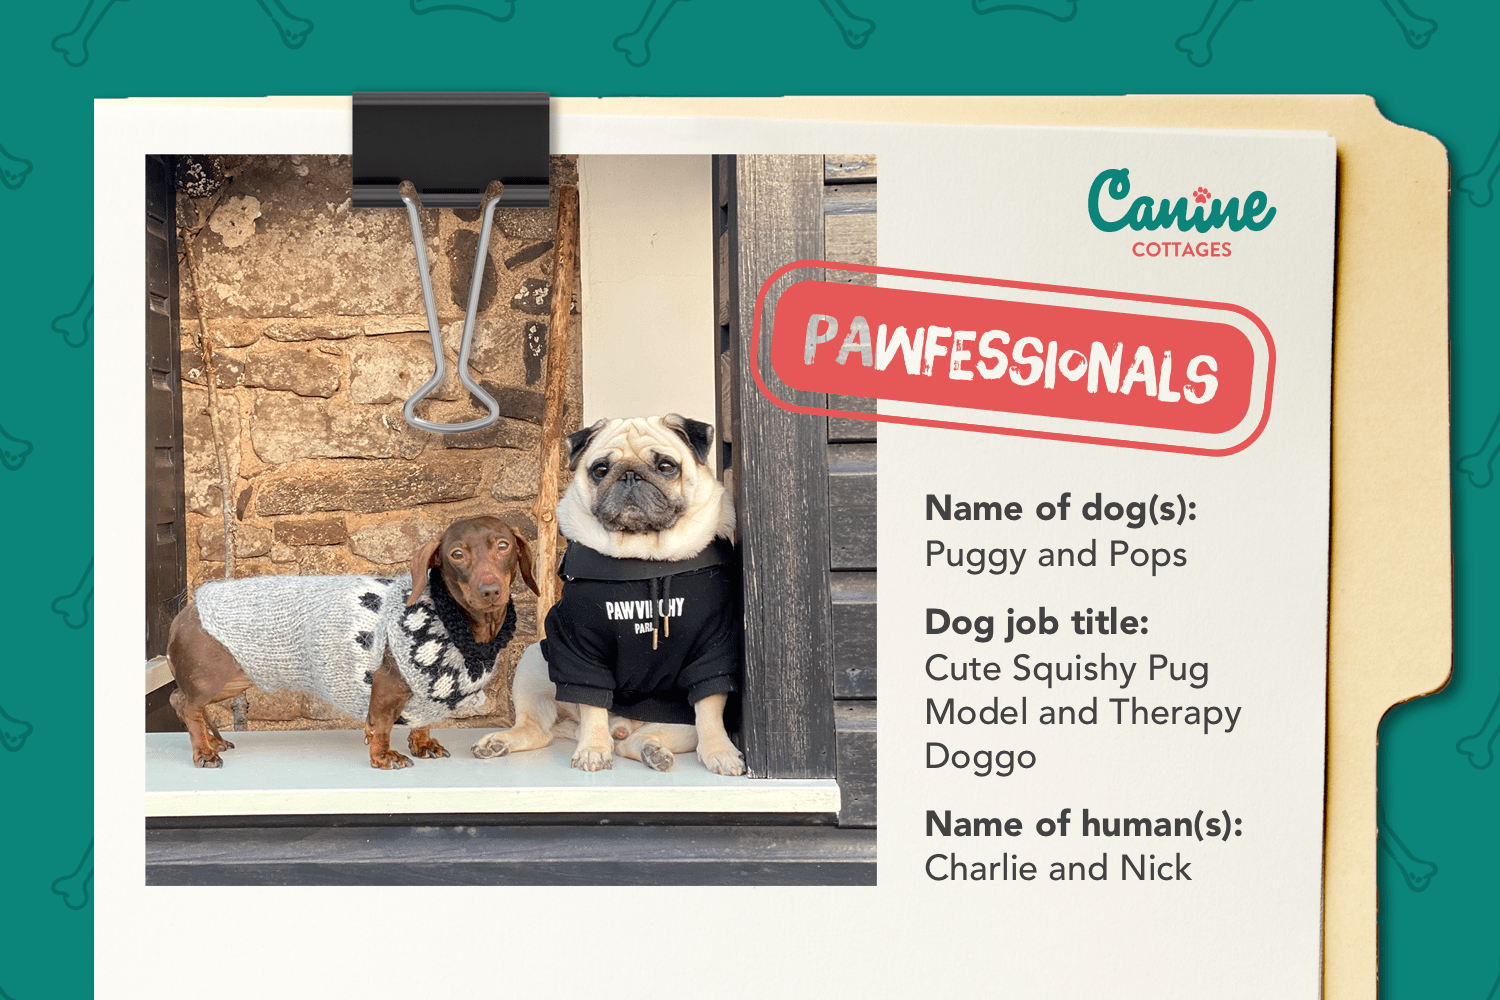 The Pawfessionals: A day in the life of Puggy and Pops